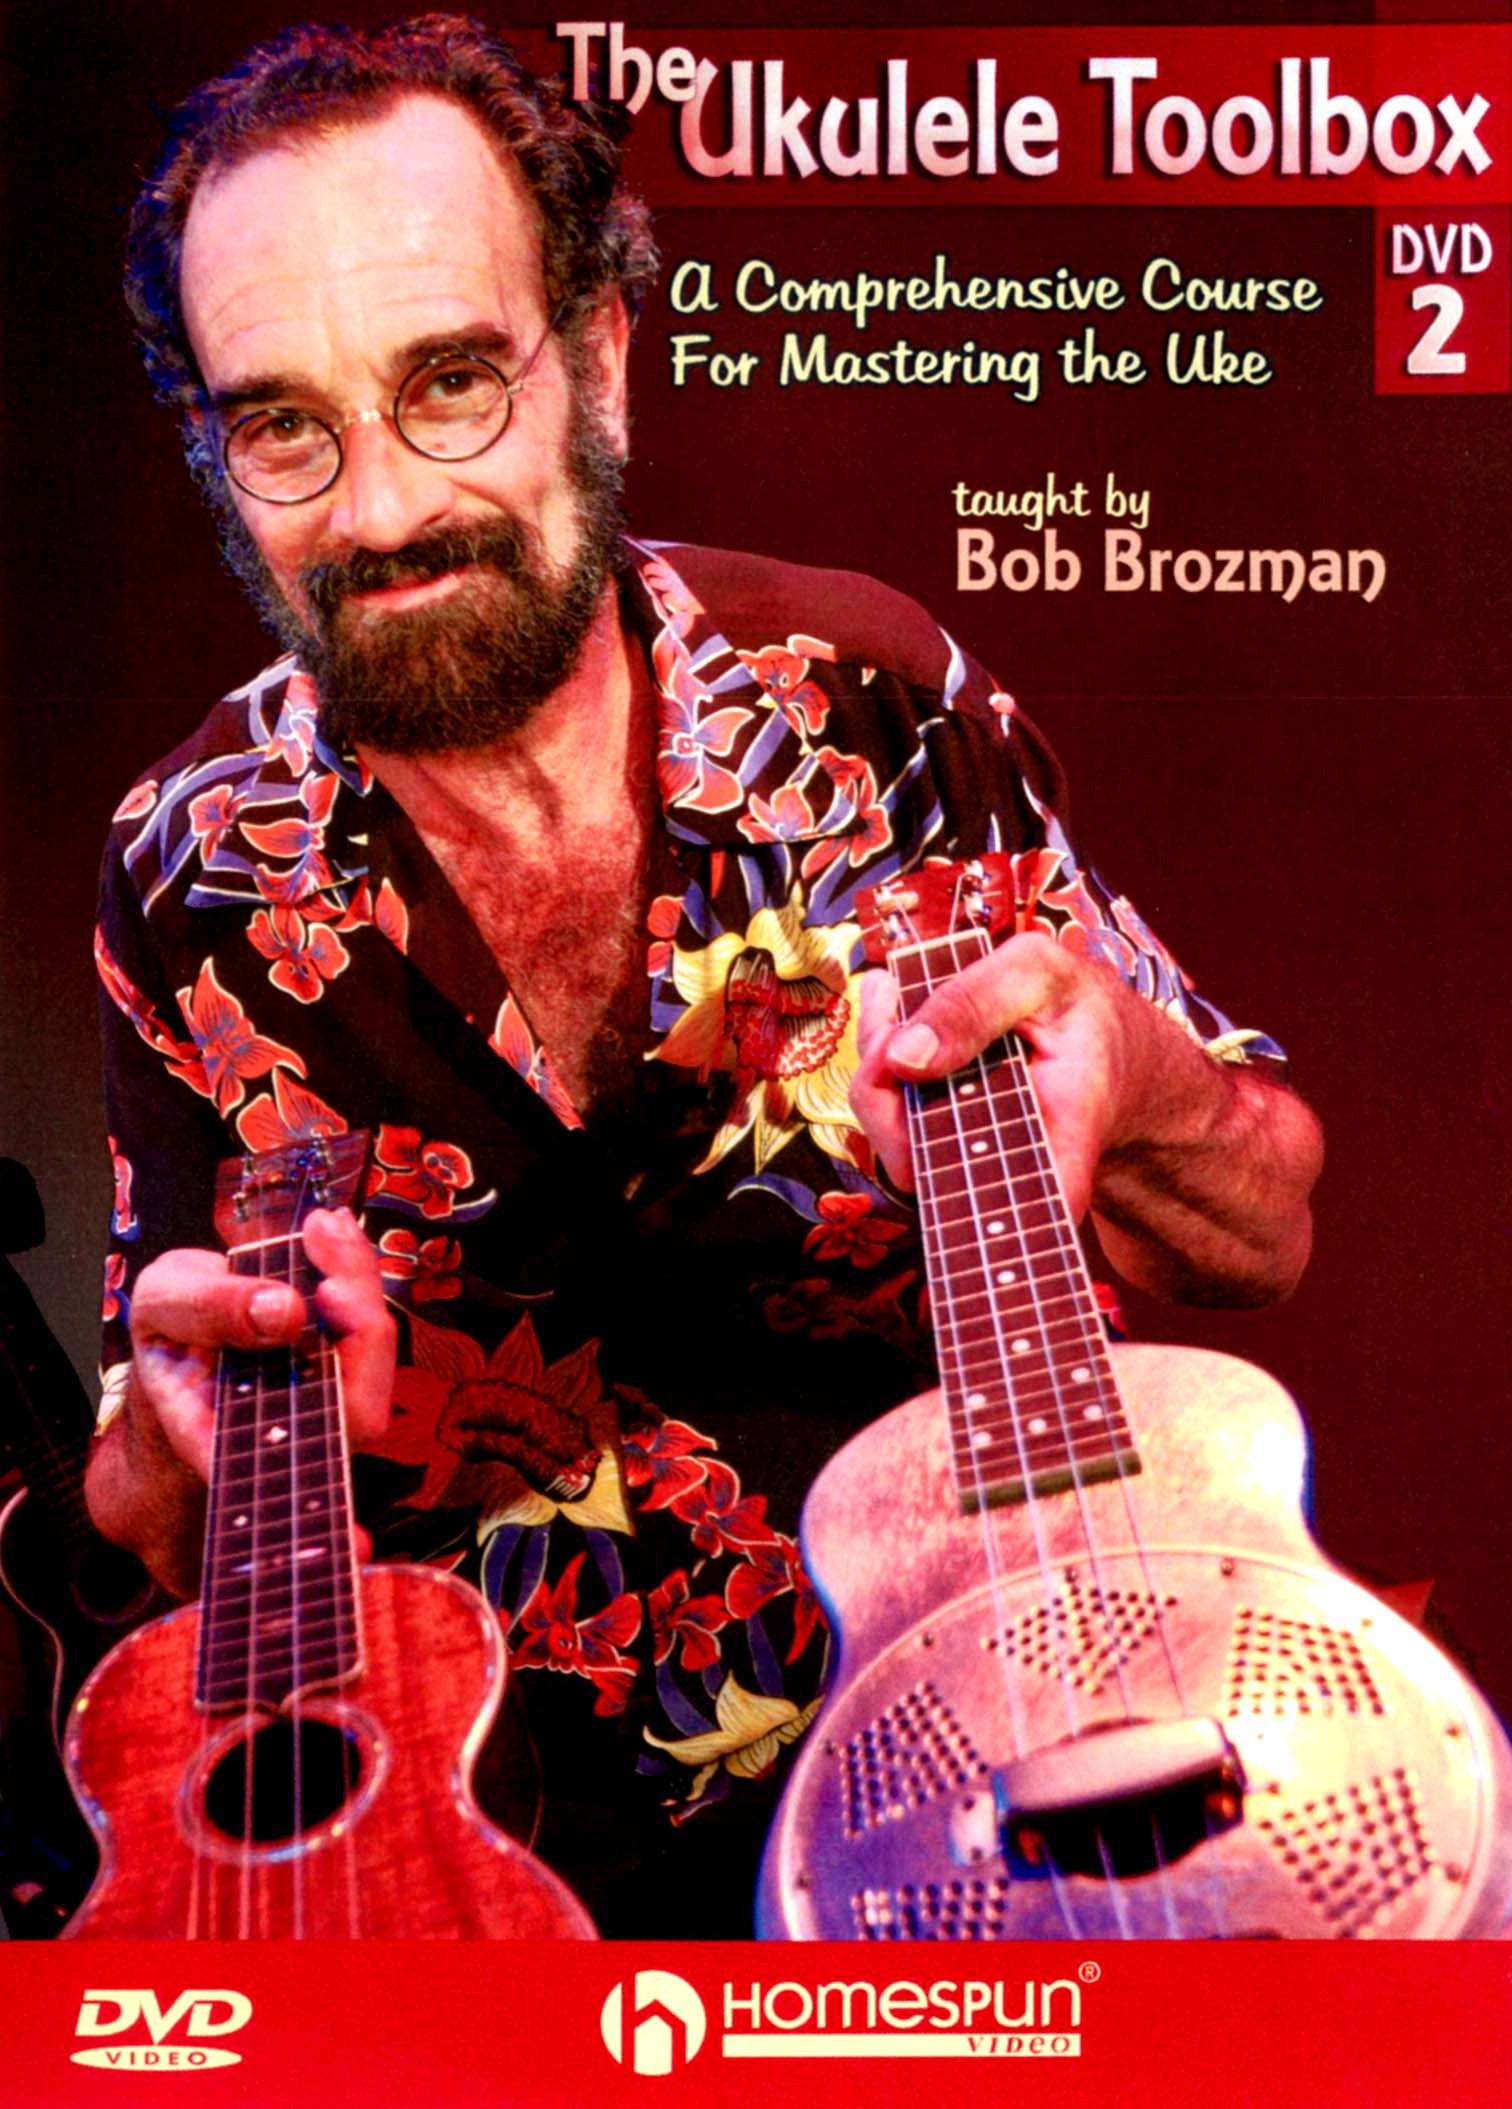 The Ukulele Toolbox: DVD 2